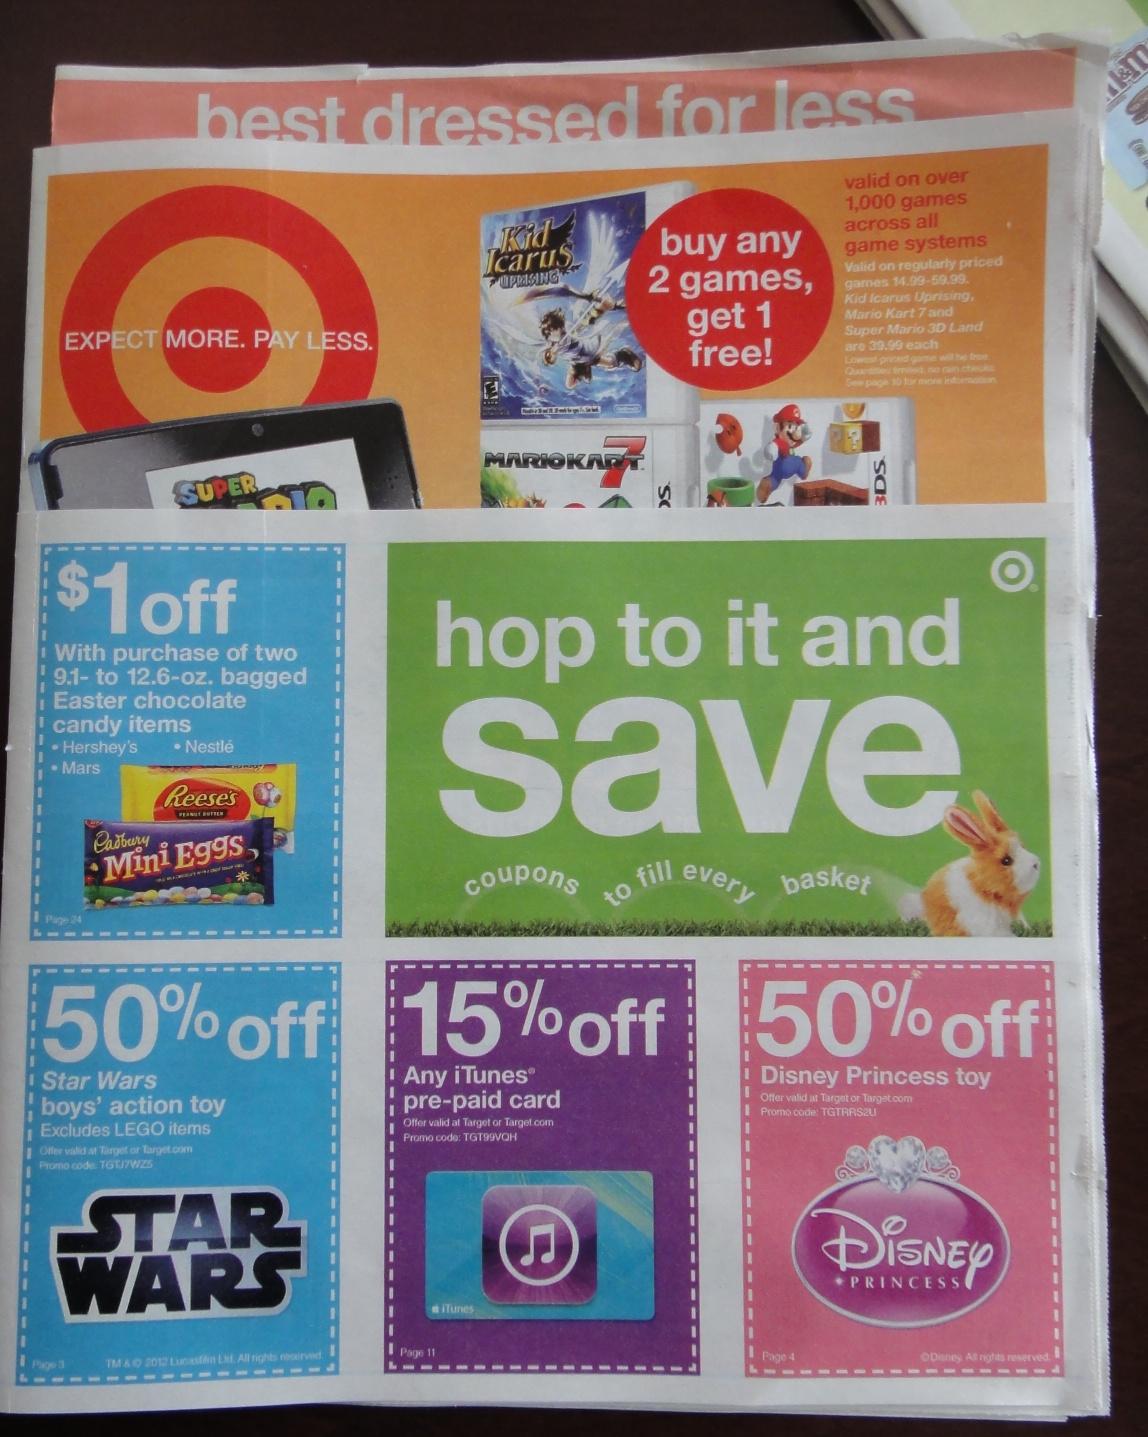 Target Save 50 On Star Wars Boys Action Toy Disney Princess Toy Fisher Price Mega Bloks